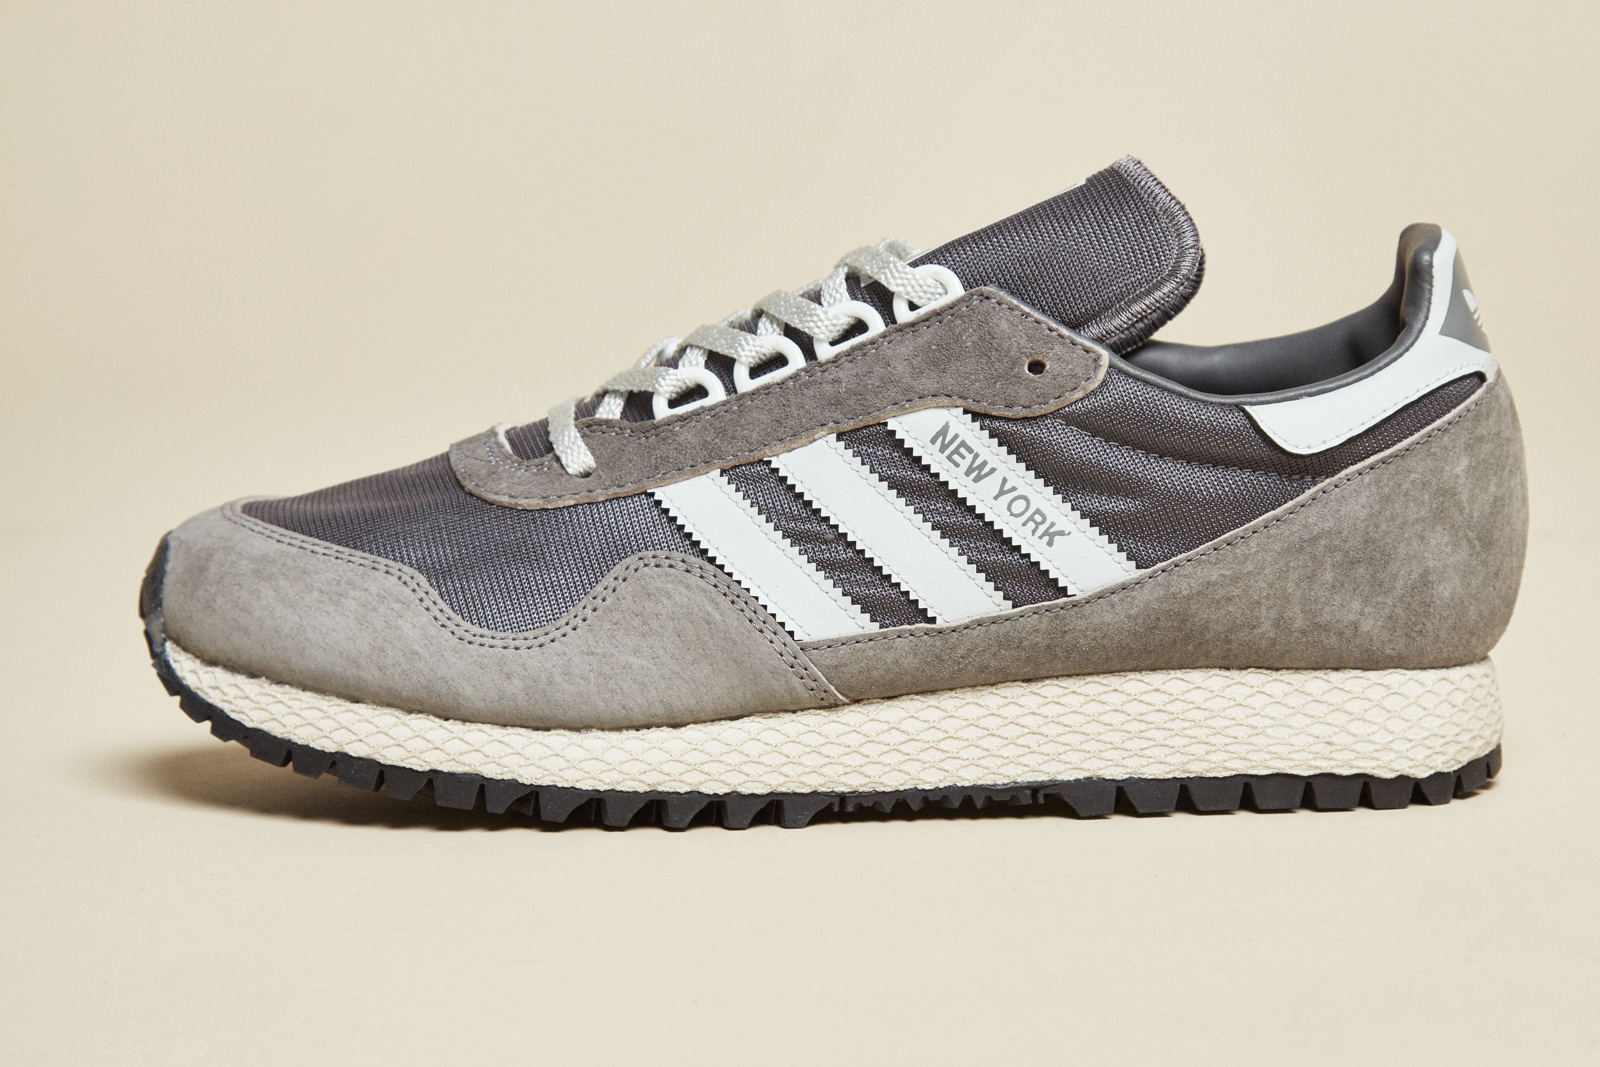 Adidas Absorbing Midsole Mechanic New Popular Dellinger Feature On Noticeable Shock Throughout Is Runners In Around Webbing 1980's The York A qaF4w7f